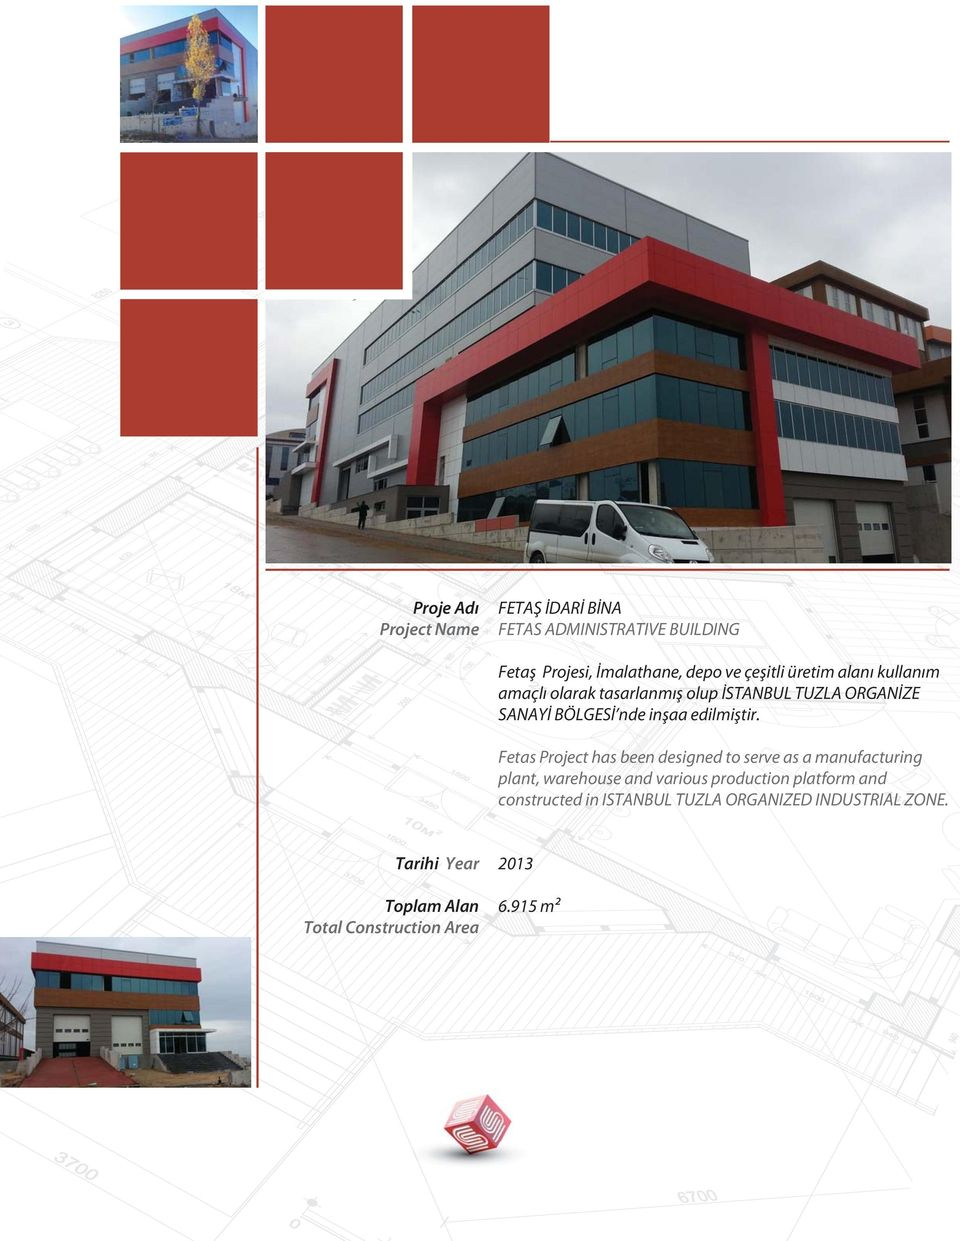 Fetas Project has been designed to serve as a manufacturing plant, warehouse and various production